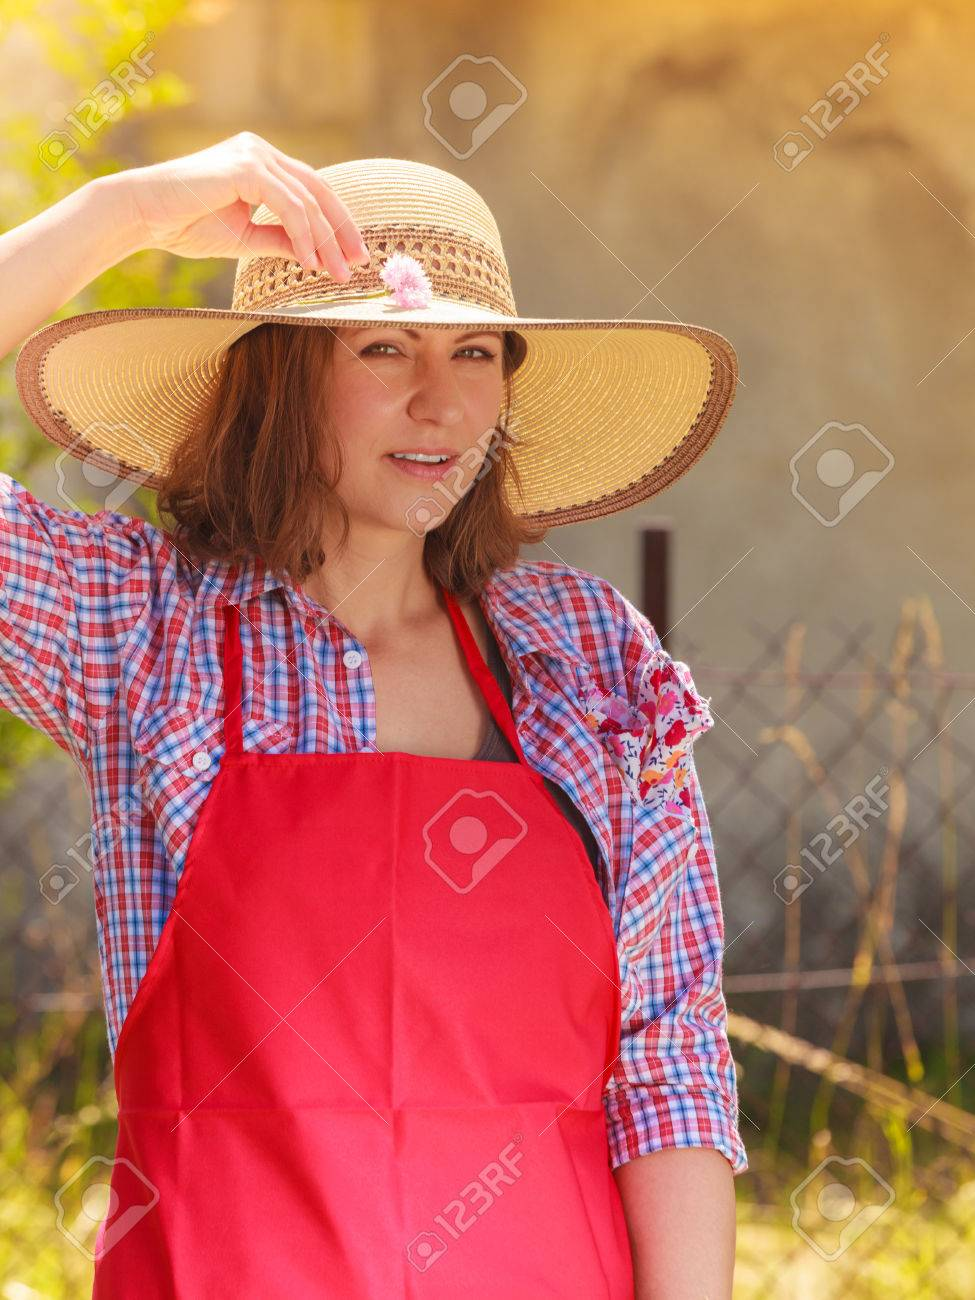 8f5d8c8a678bd Portrait of mature smiling woman wearing big straw hat in garden Stock  Photo - 84436021